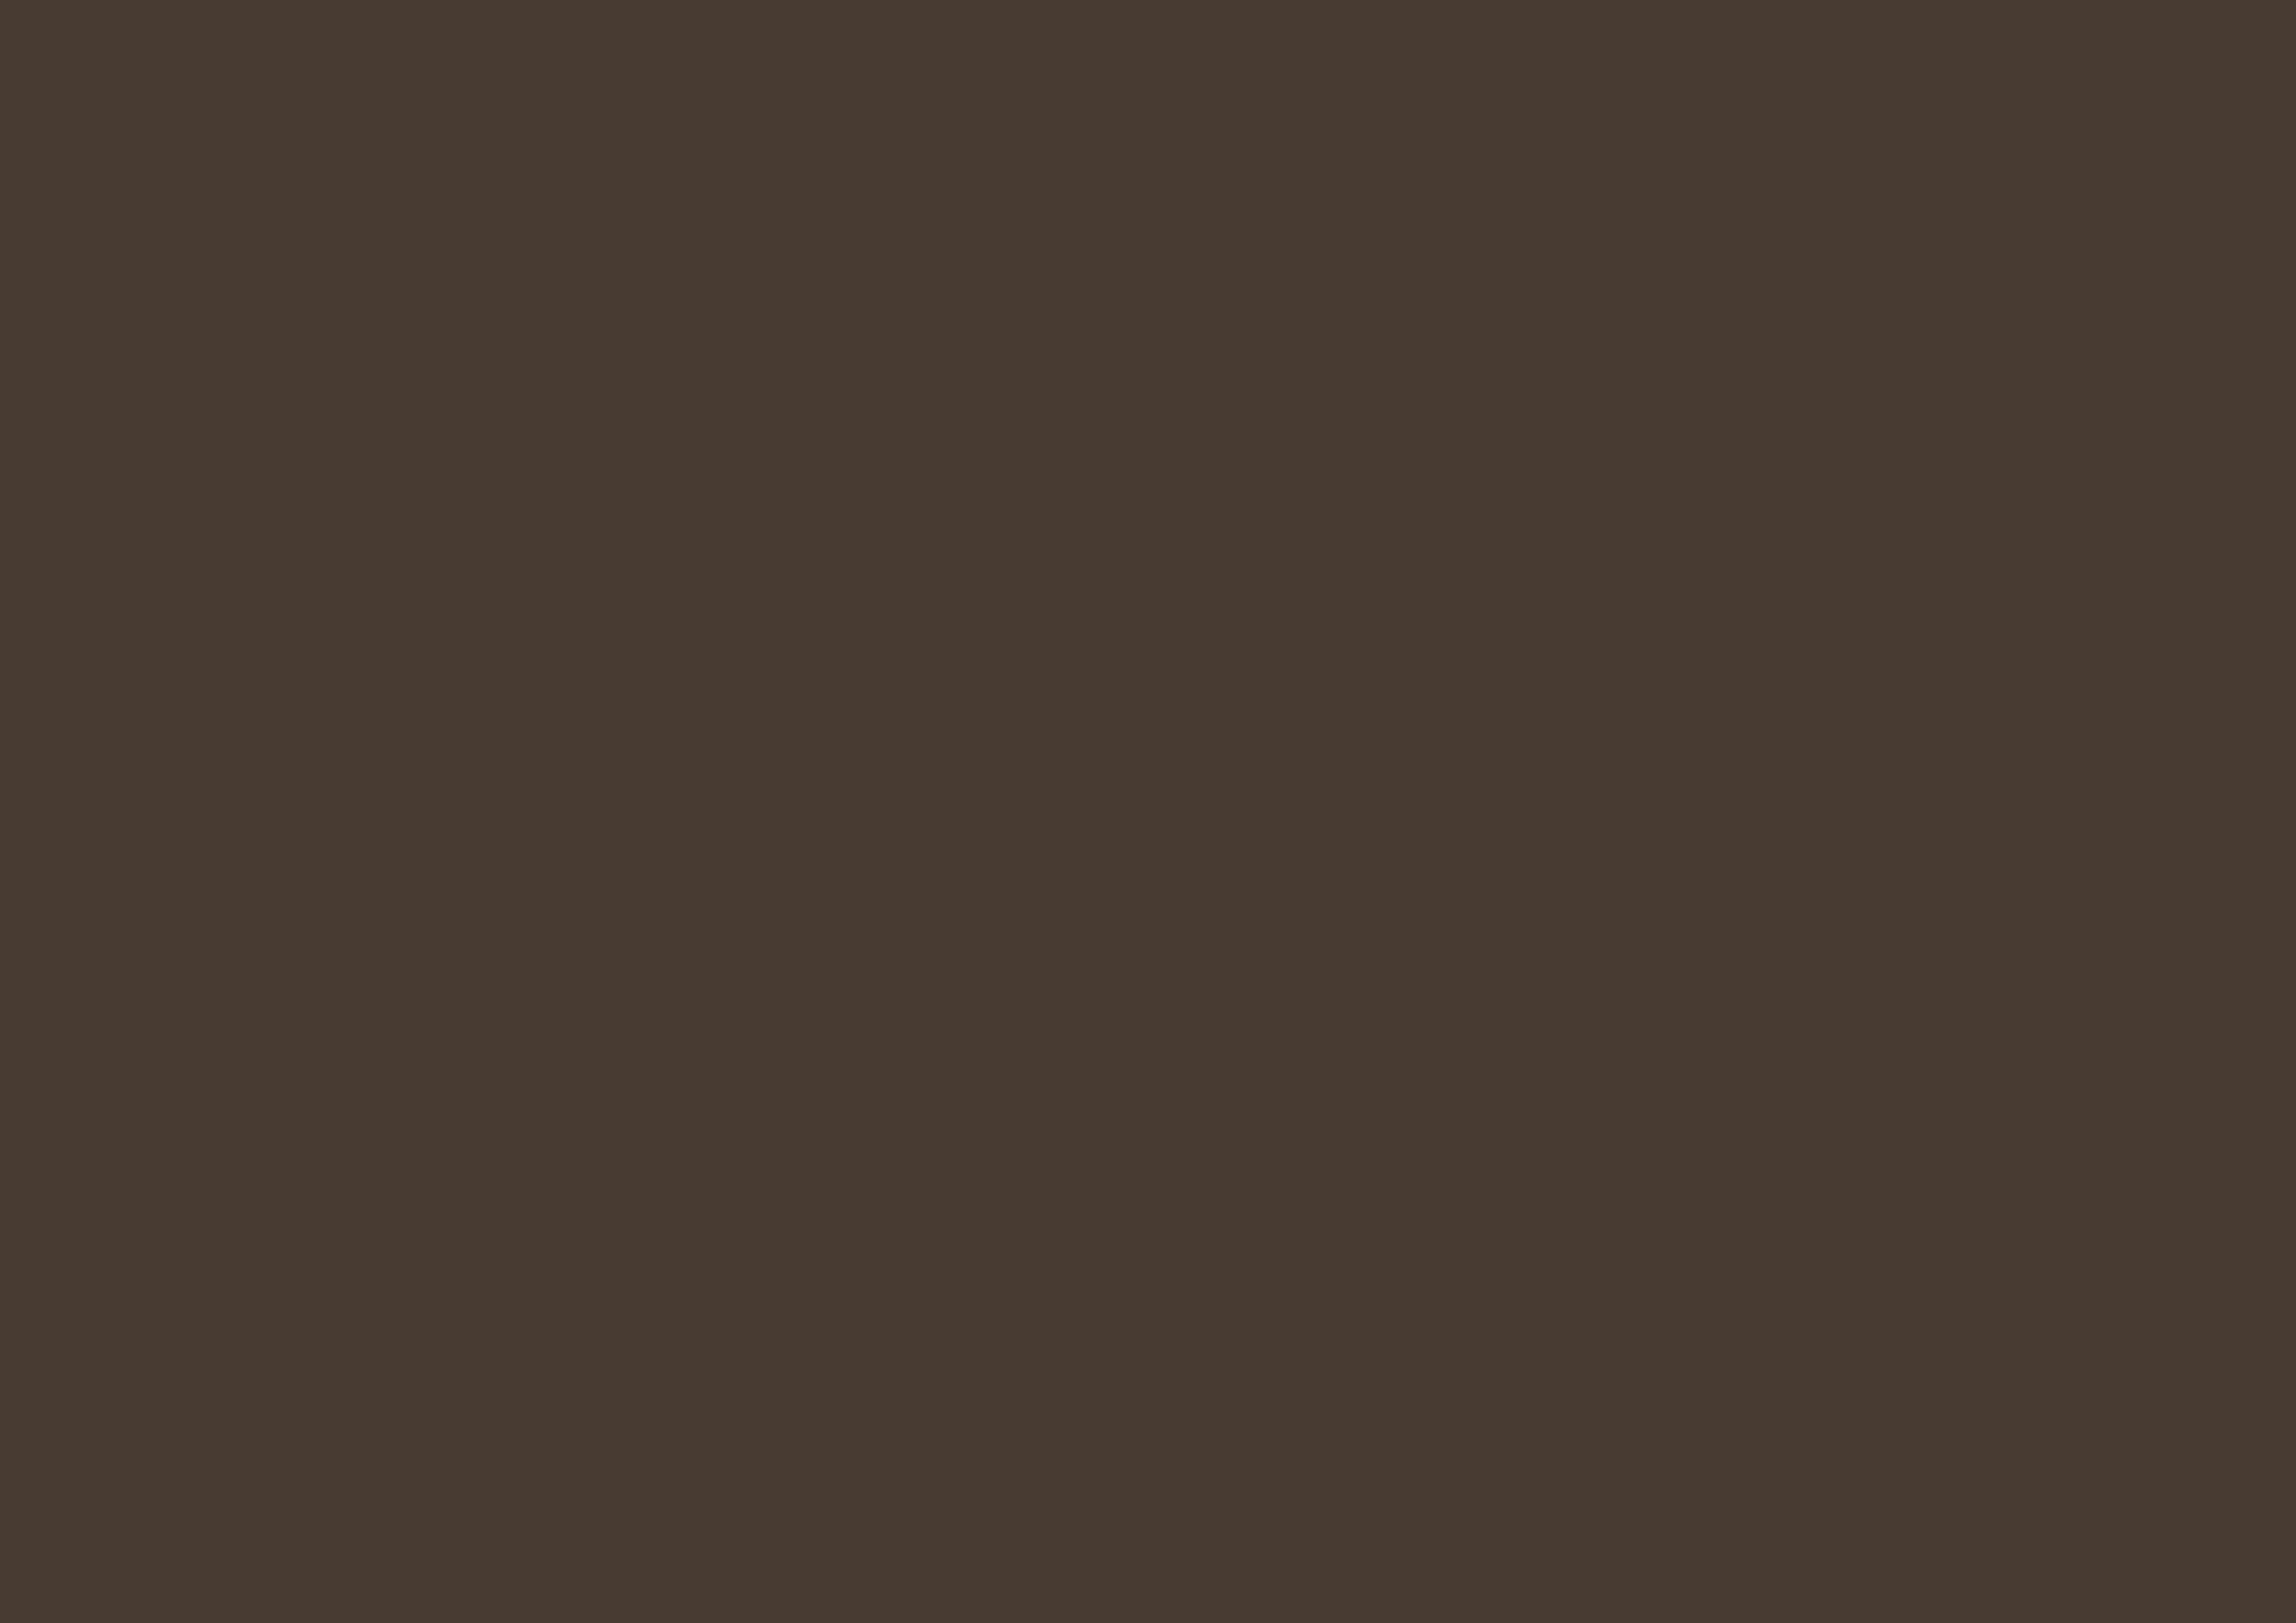 3508x2480 Dark Taupe Solid Color Background